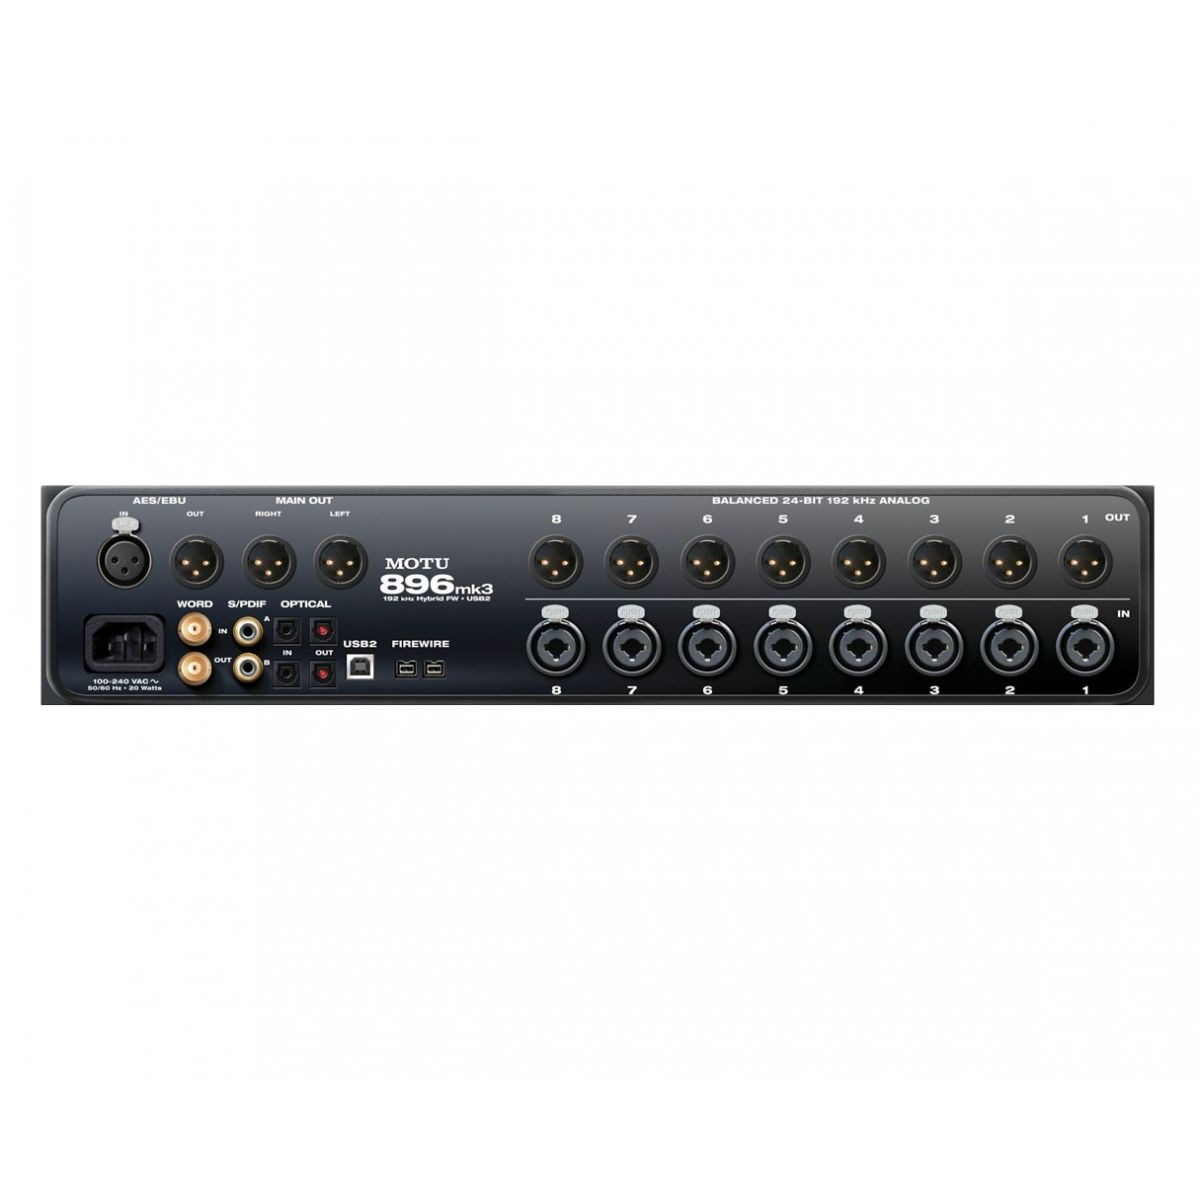 Motu 896 MK 3 Hybrid Interface de Audio FireWire/USB